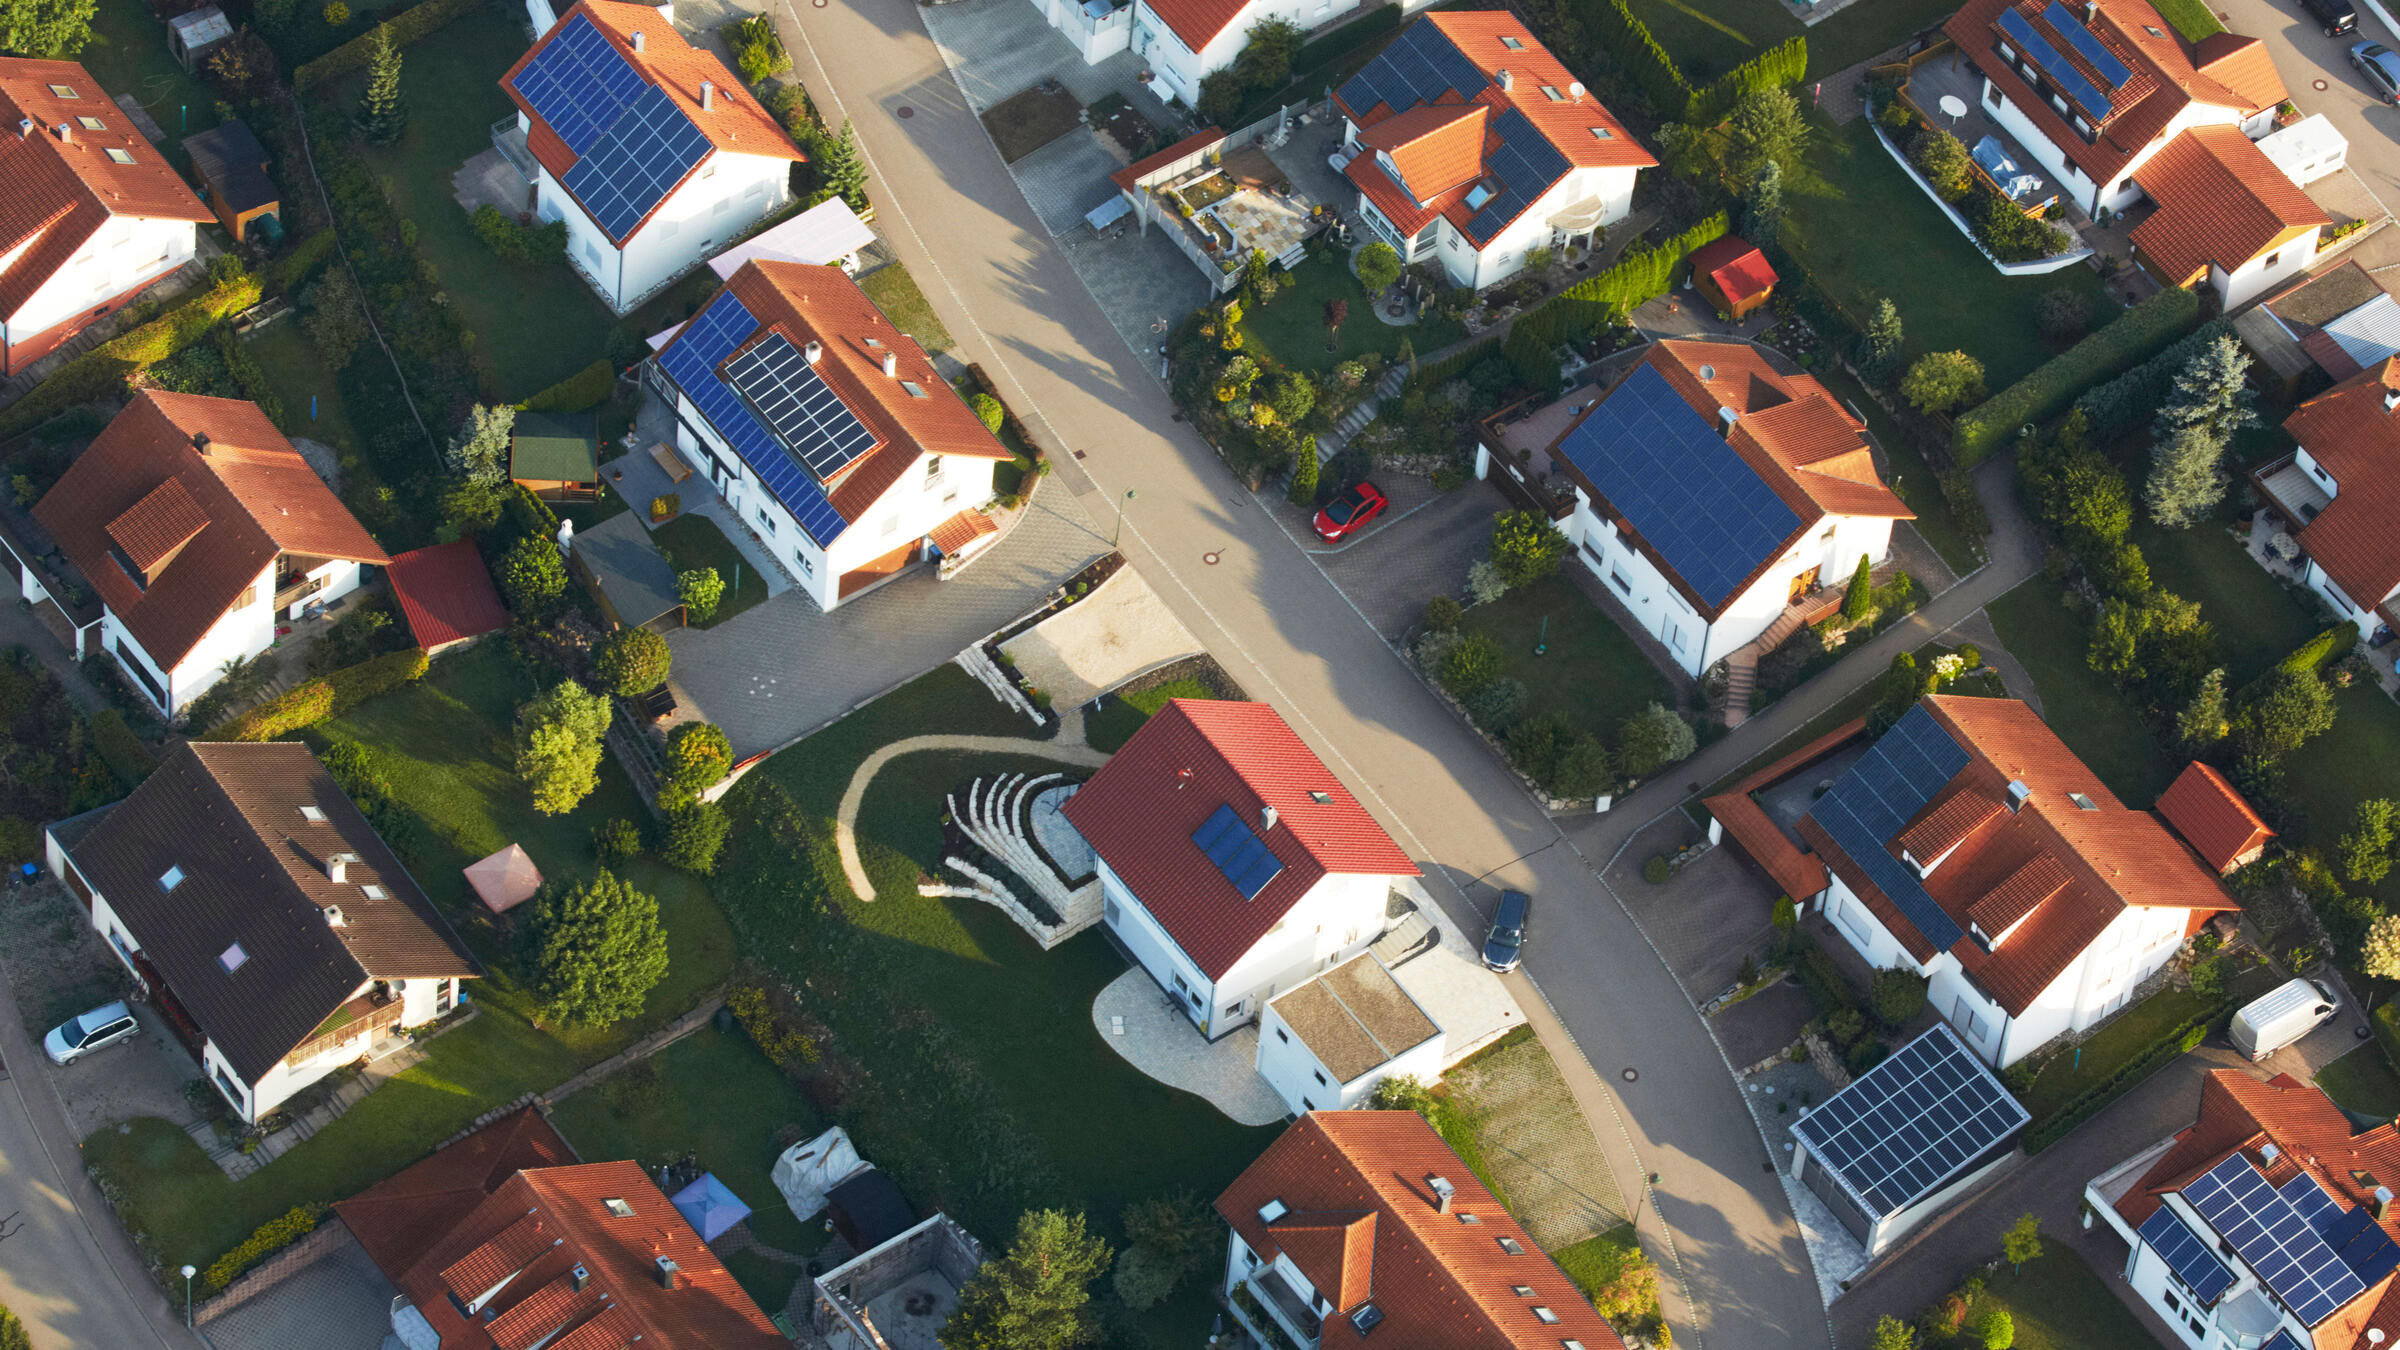 Learn more about the types and benefits of solar power, such as the rooftop panels shown on these houses in Germany. F1online digitale Bildagentur GmbH/Alamy